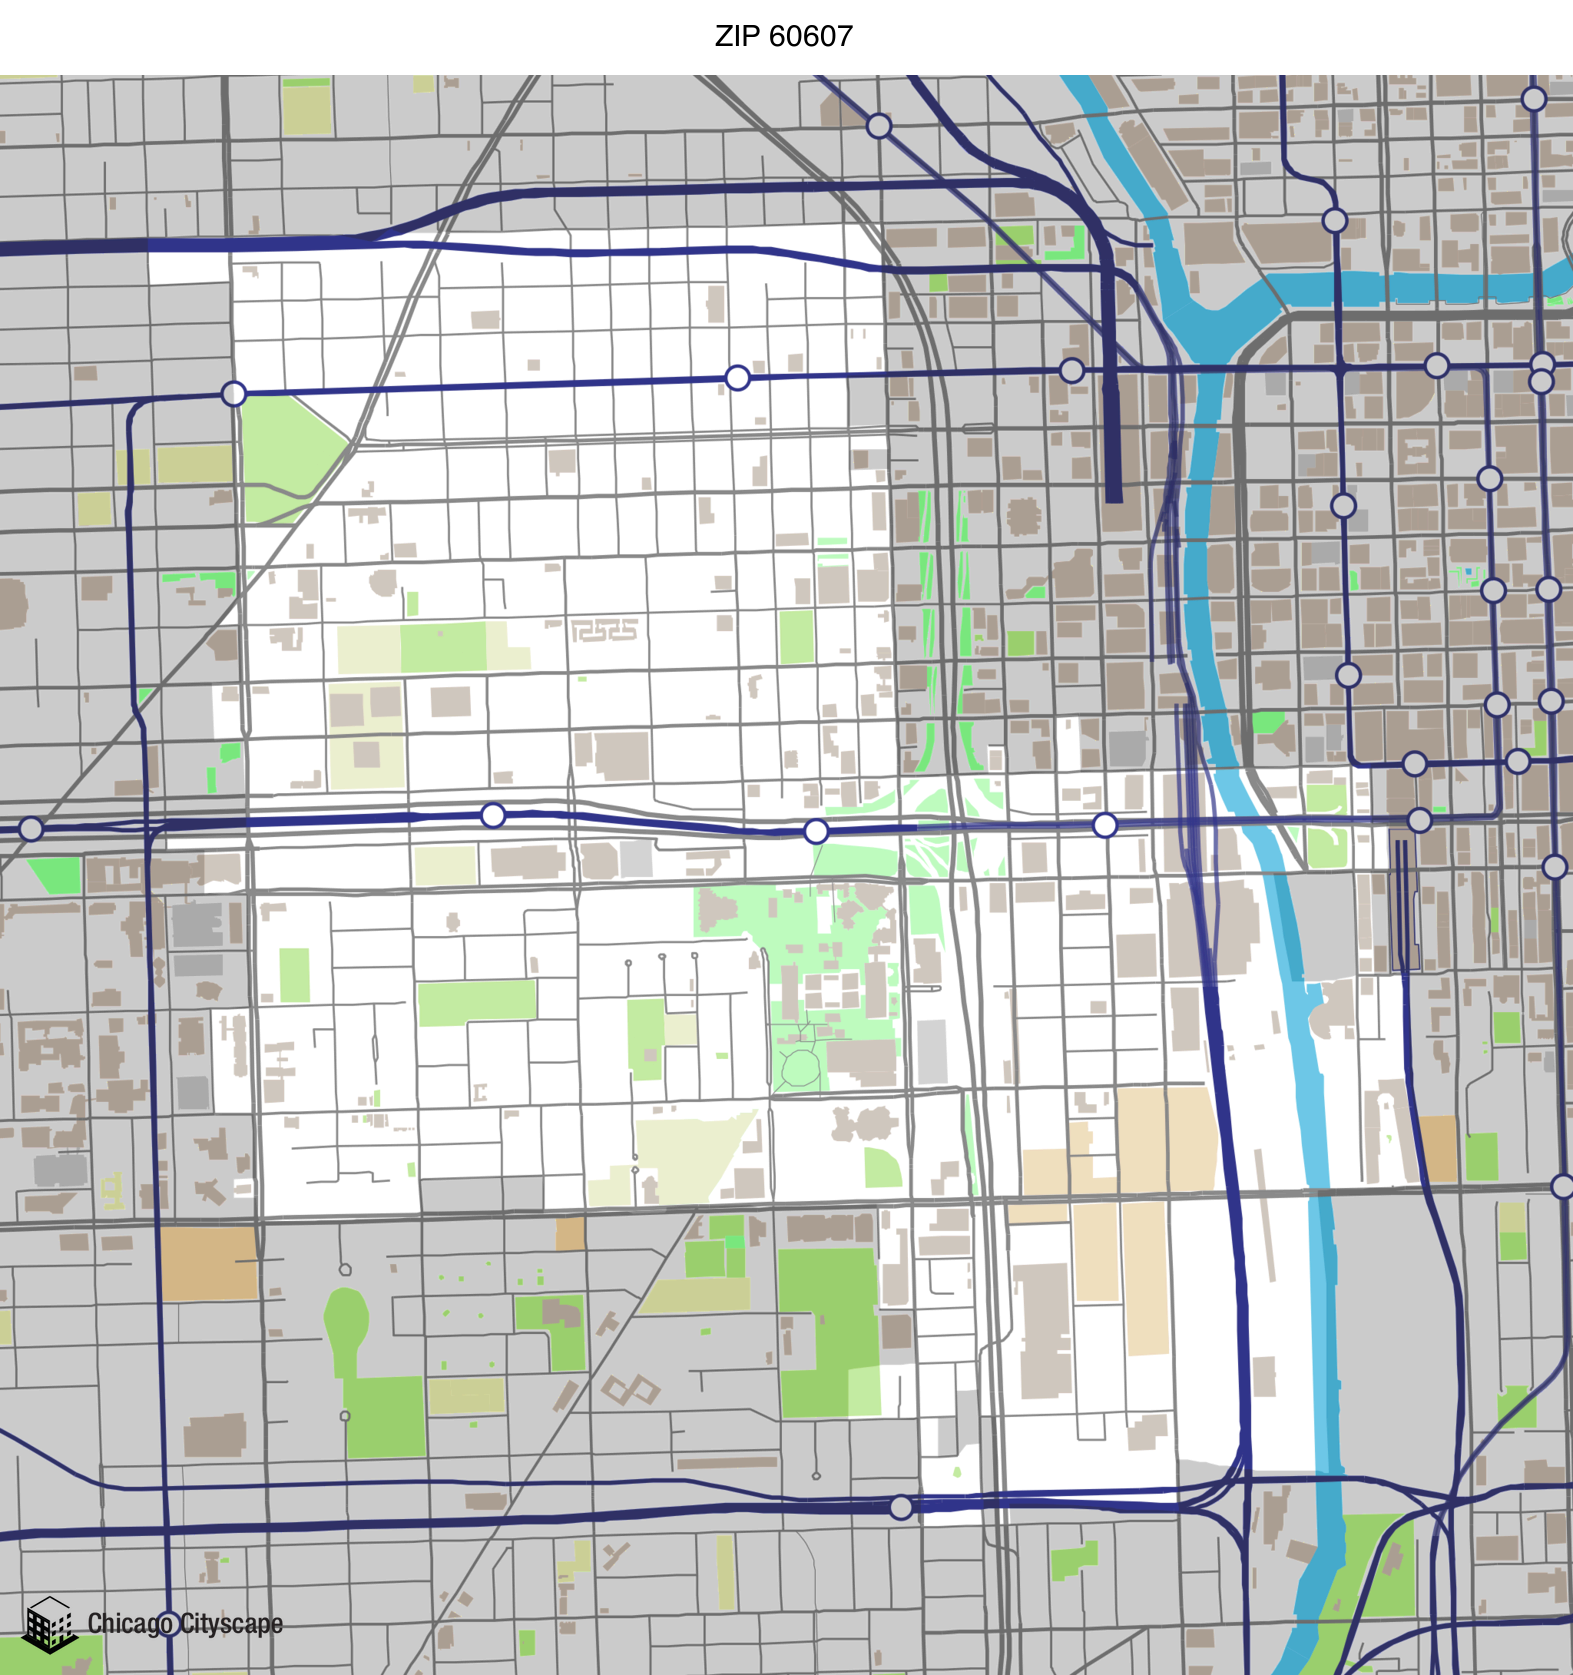 Map of building projects properties and businesses in 60607 ZIP Code